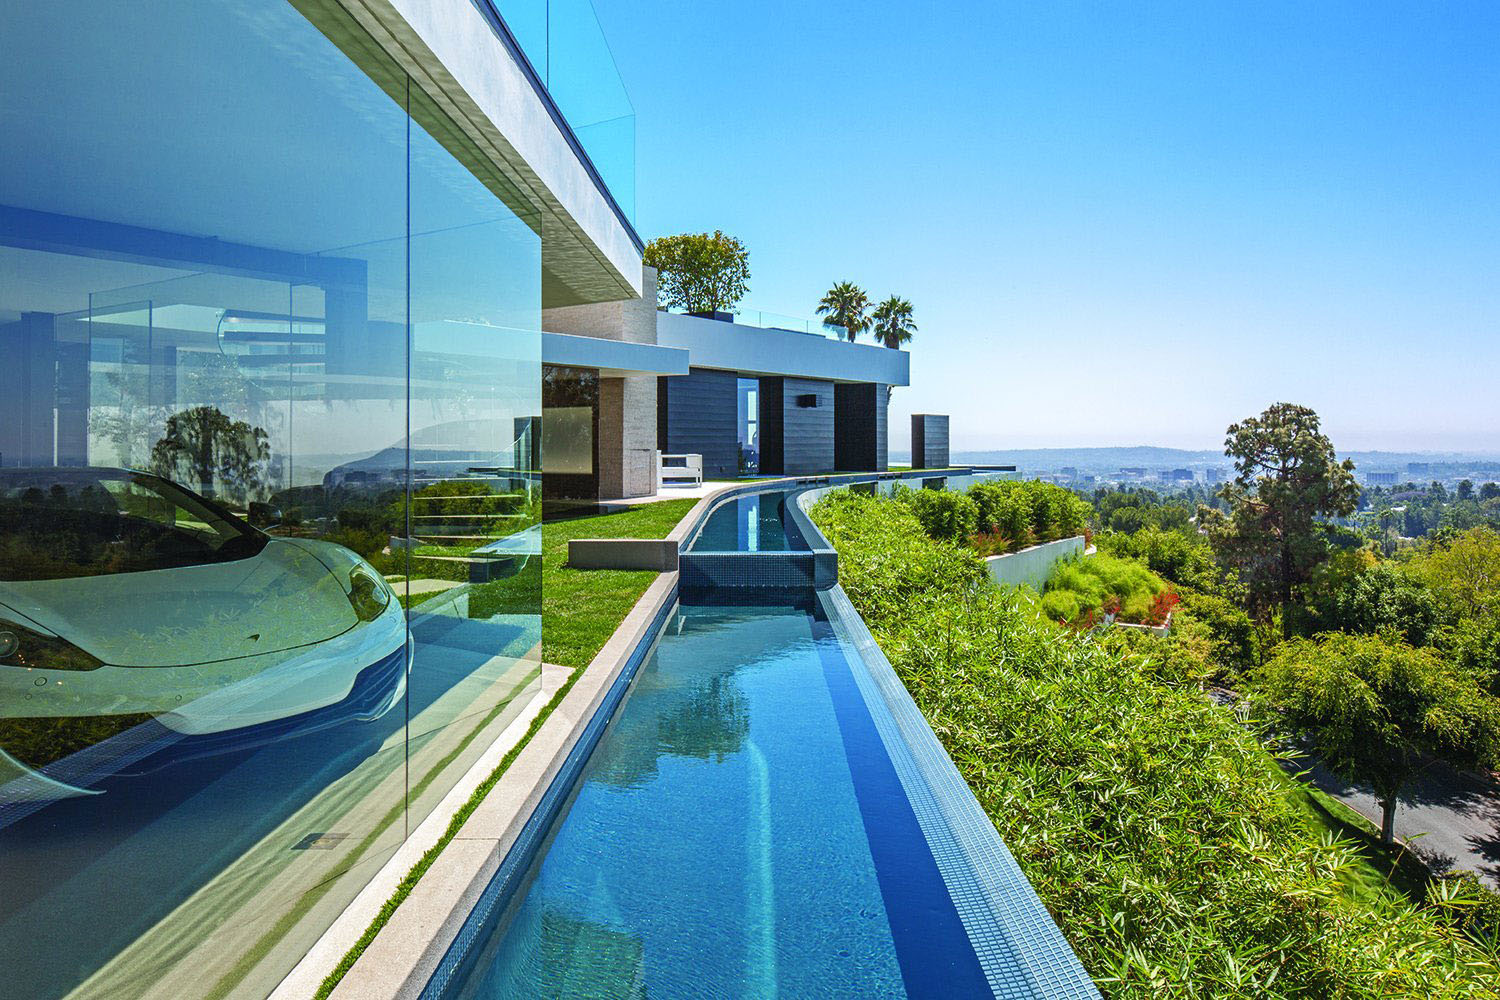 Pool Garten Schmal World Class Beverly Hills Contemporary Luxury Home With